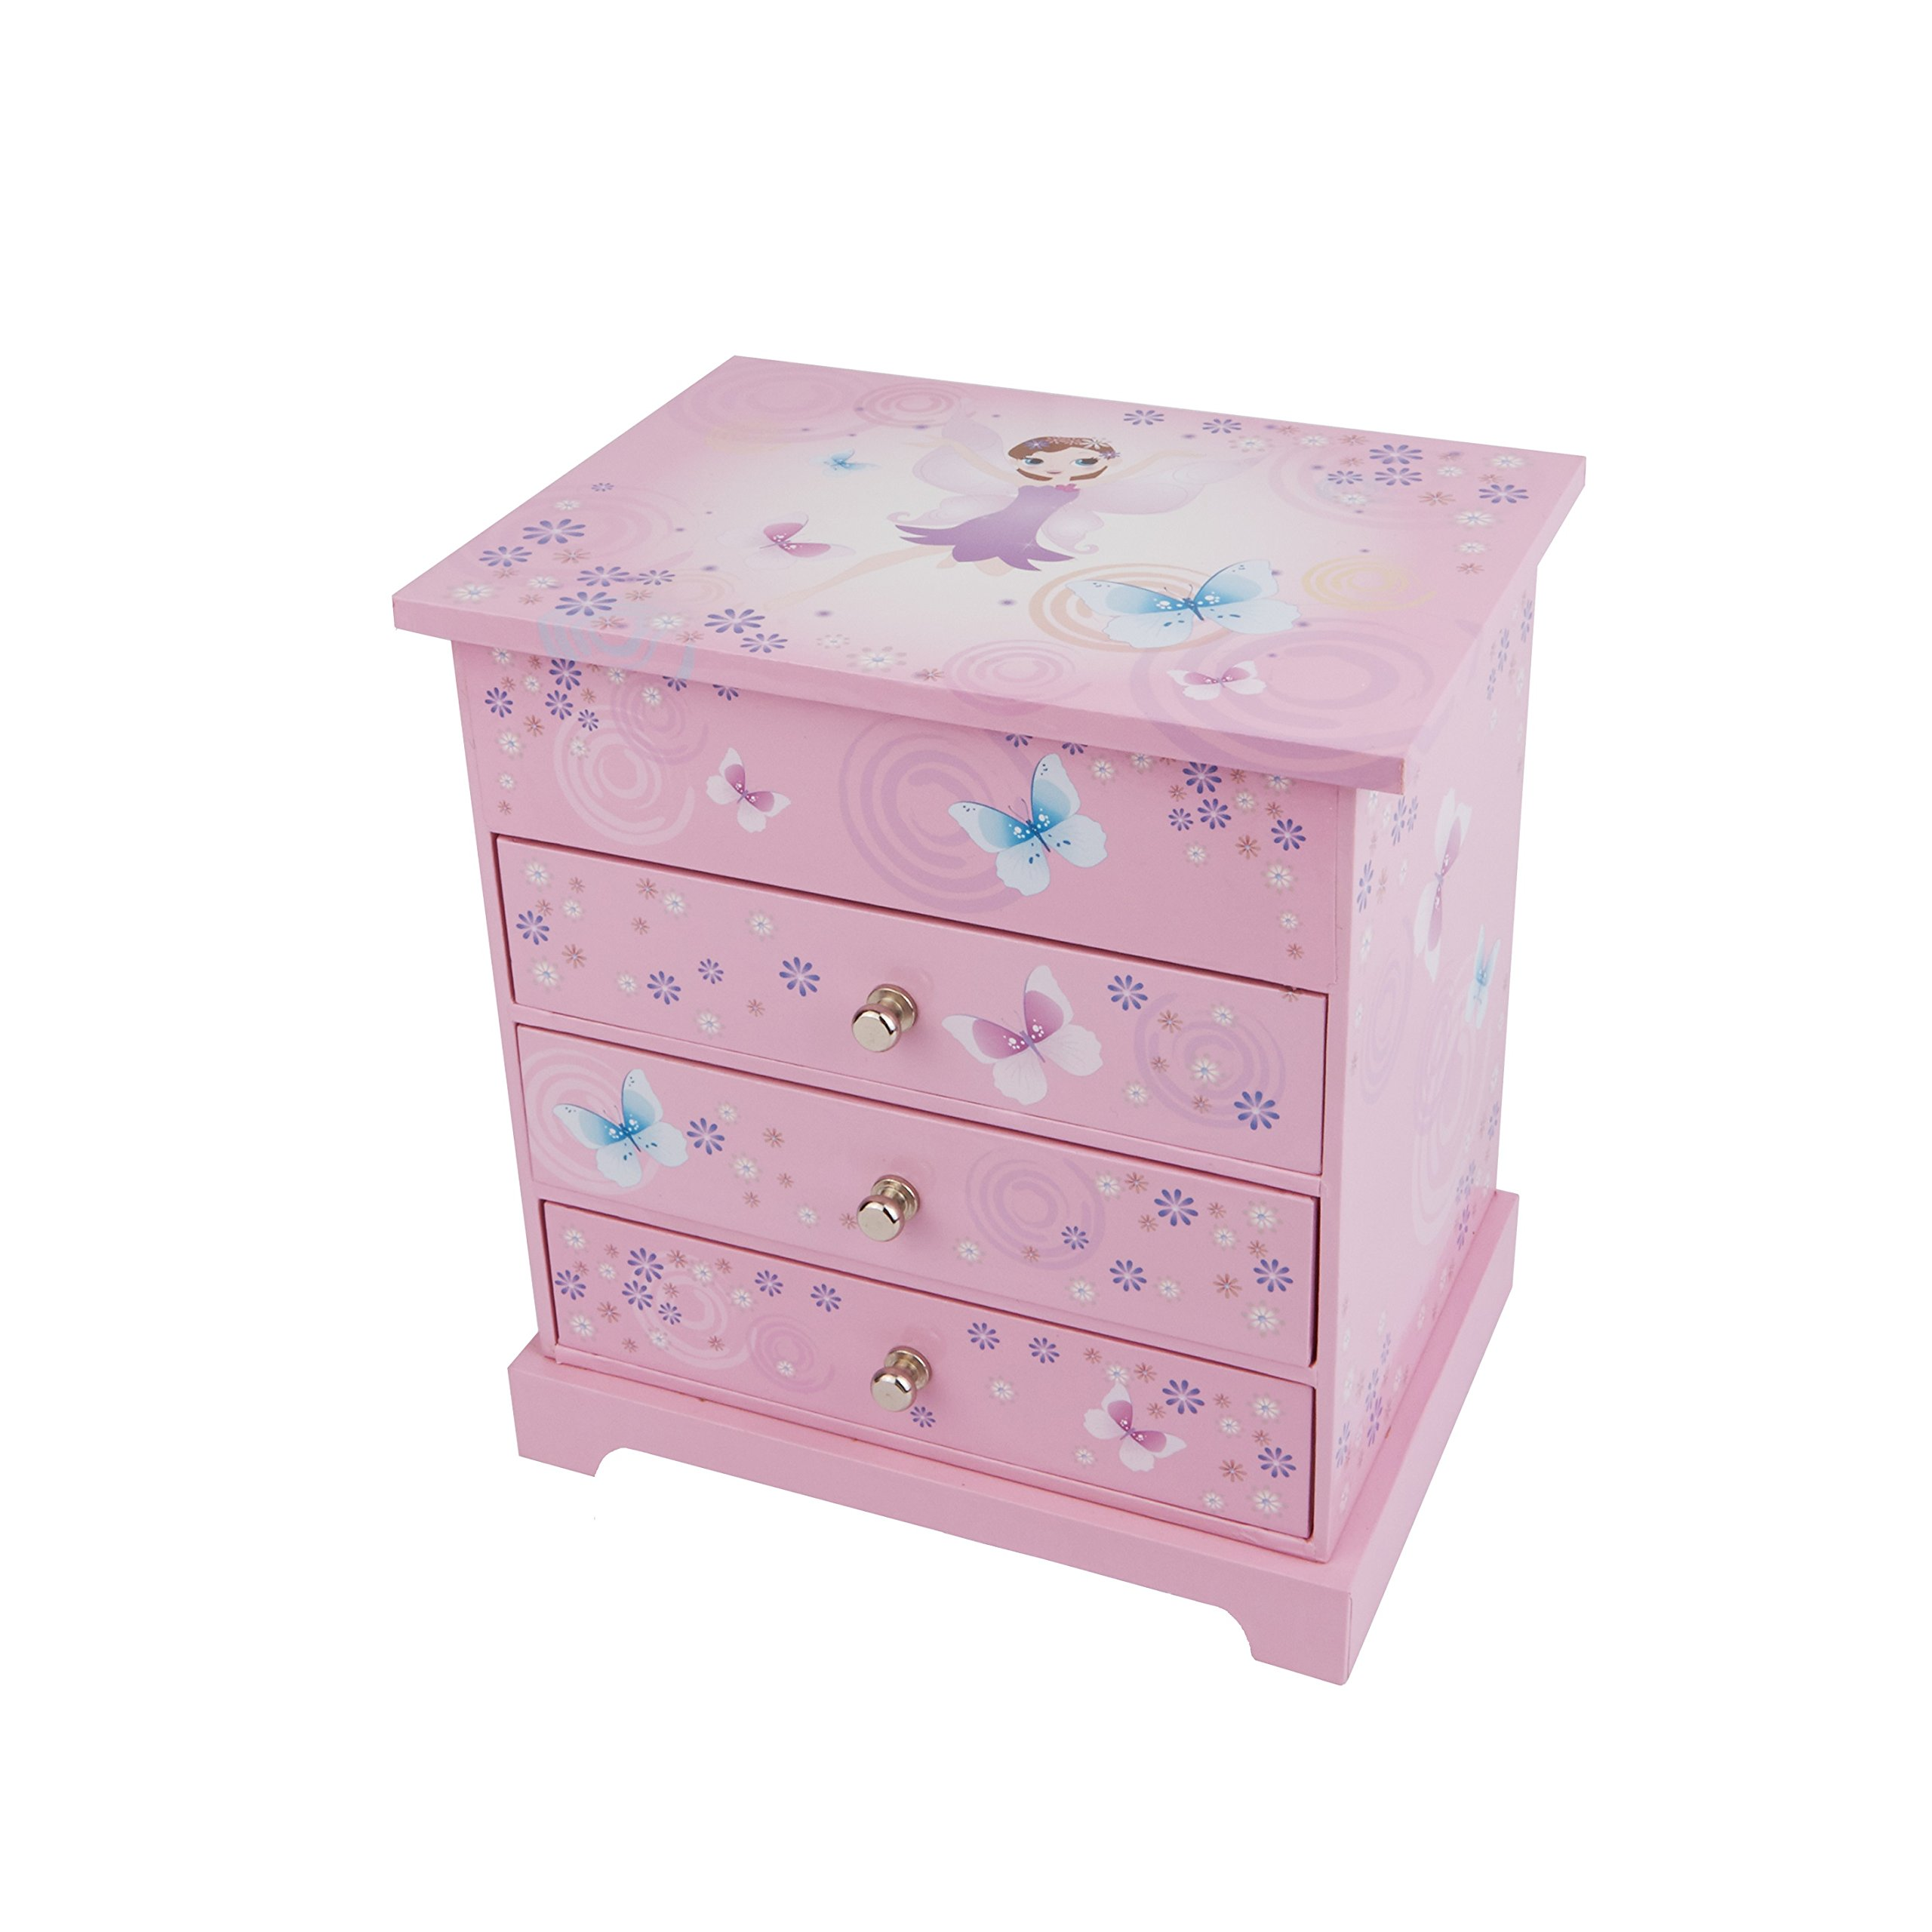 Fairy Trousselier Musical Chest of Drawers Parma